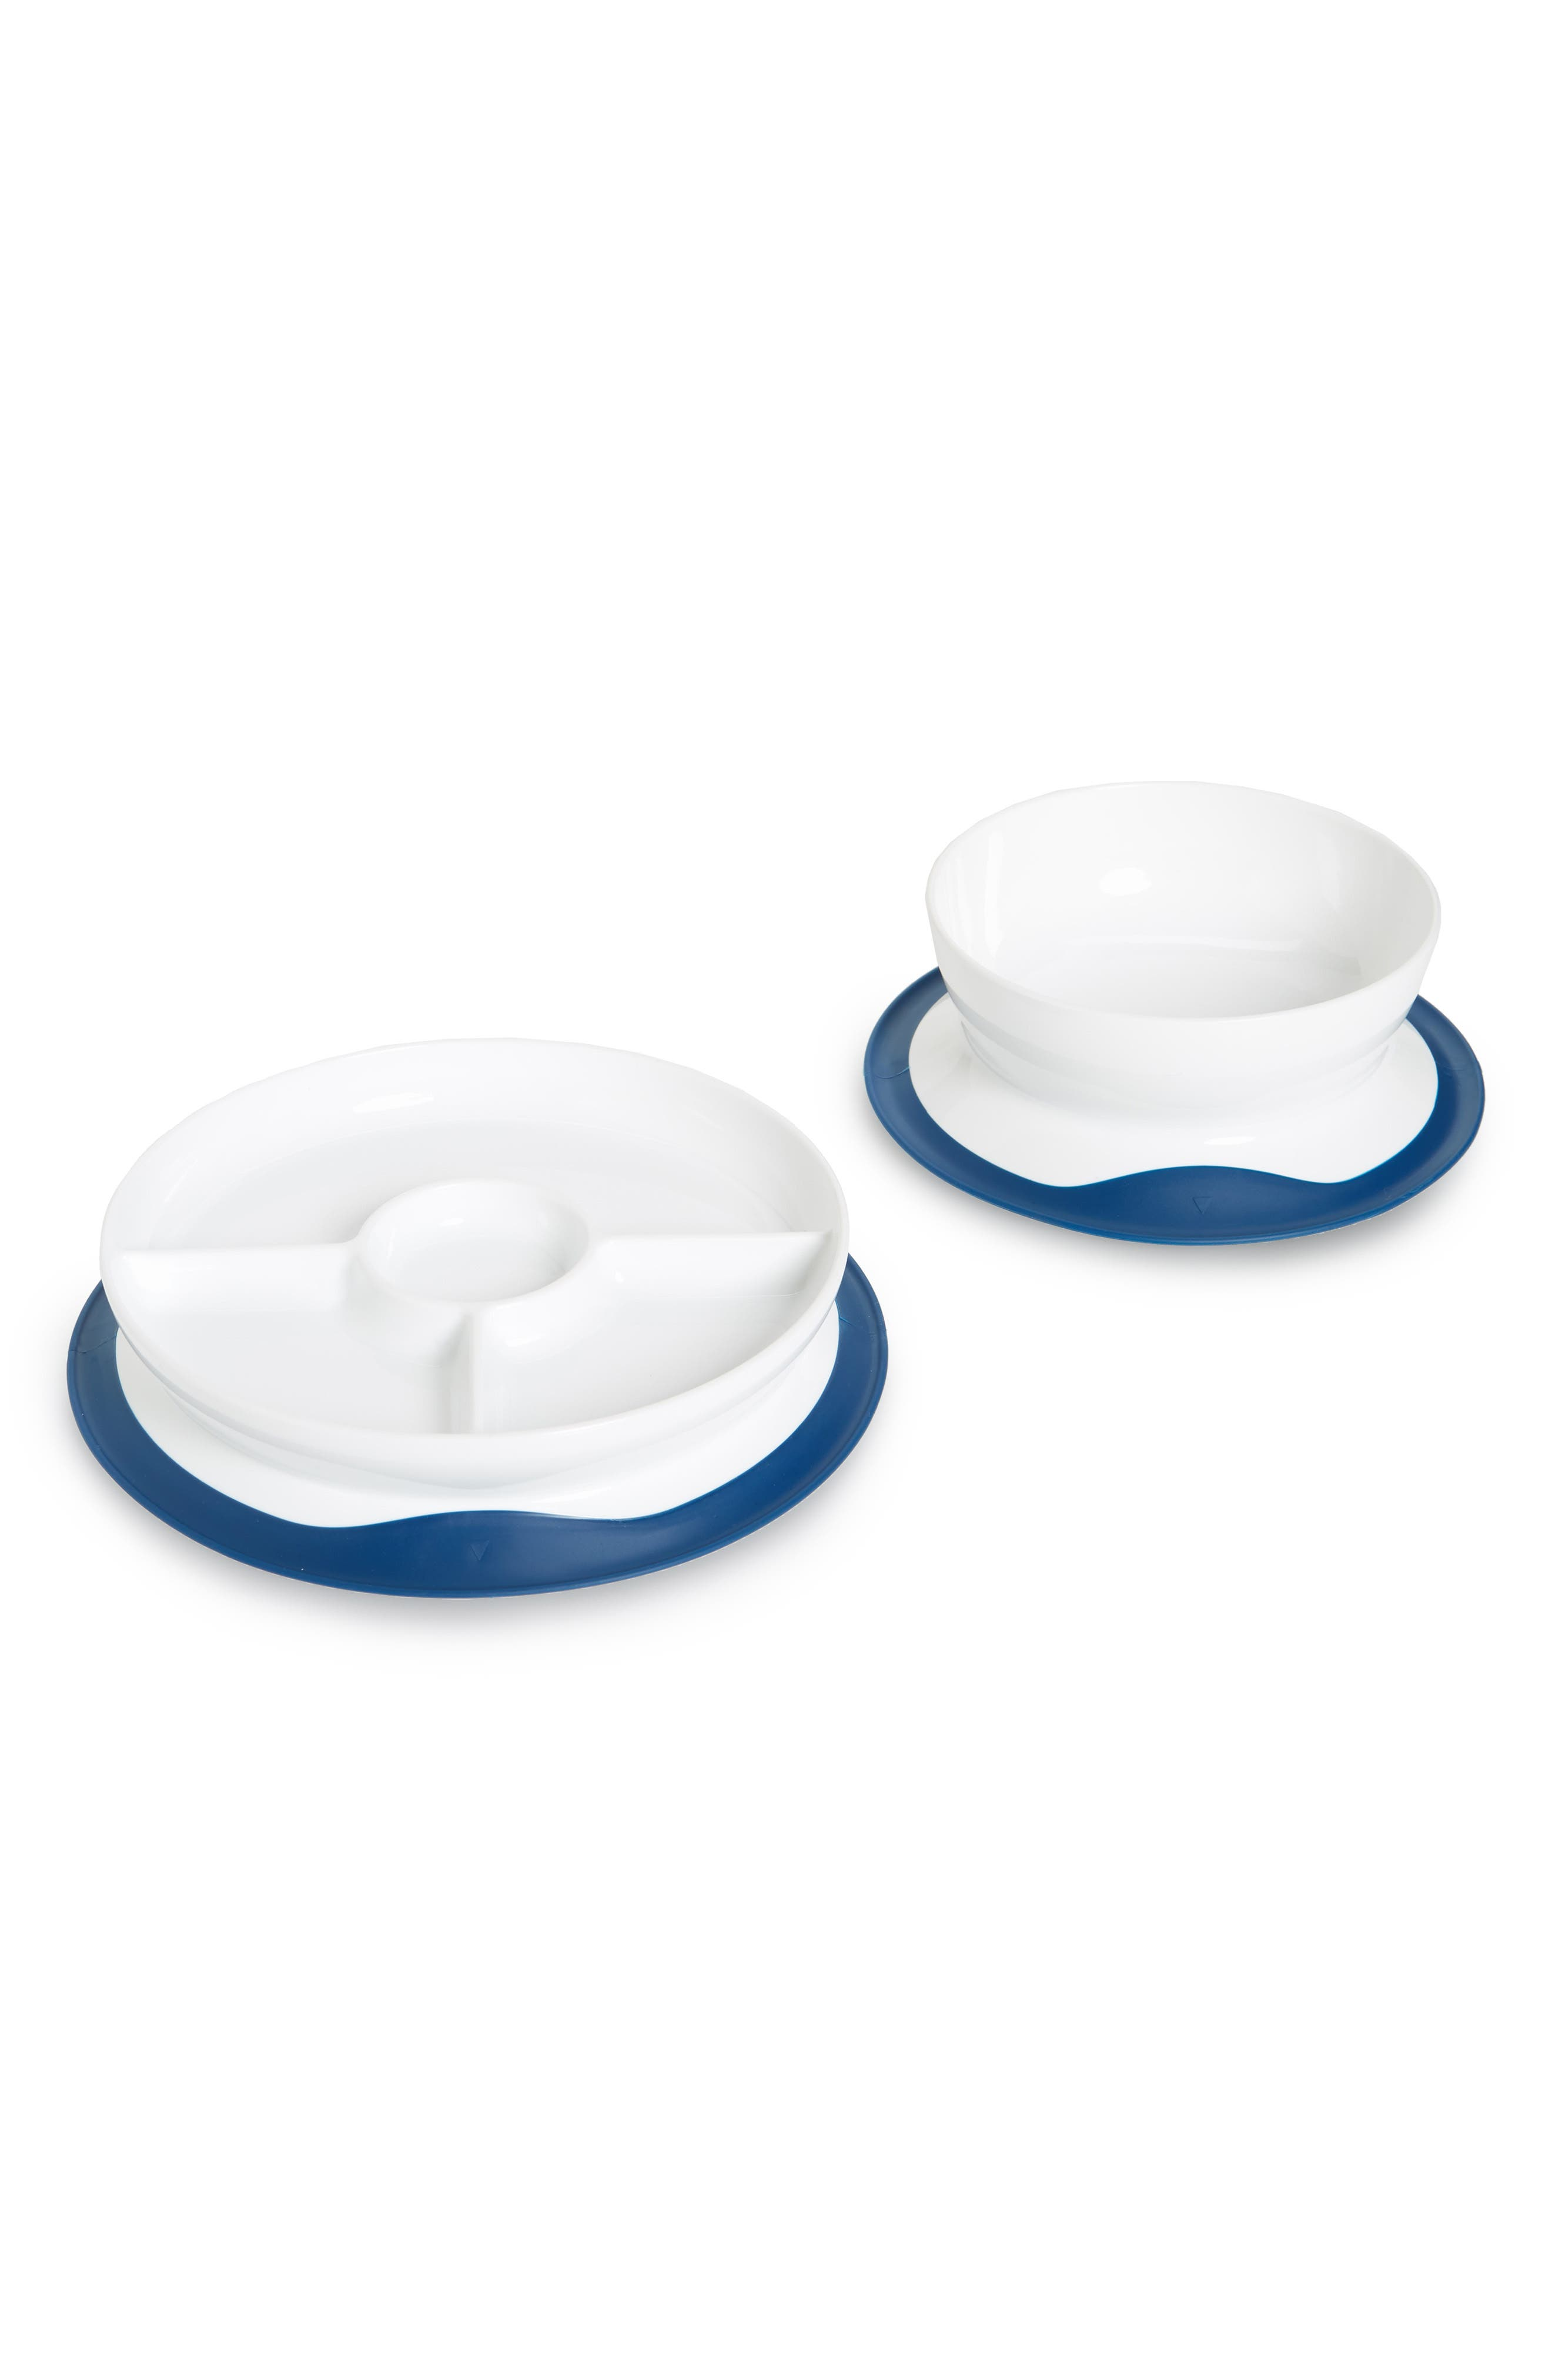 Infant Oxo Tot Stick  Stay Suction Divided Plate  Bowl Set Size One Size  Blue